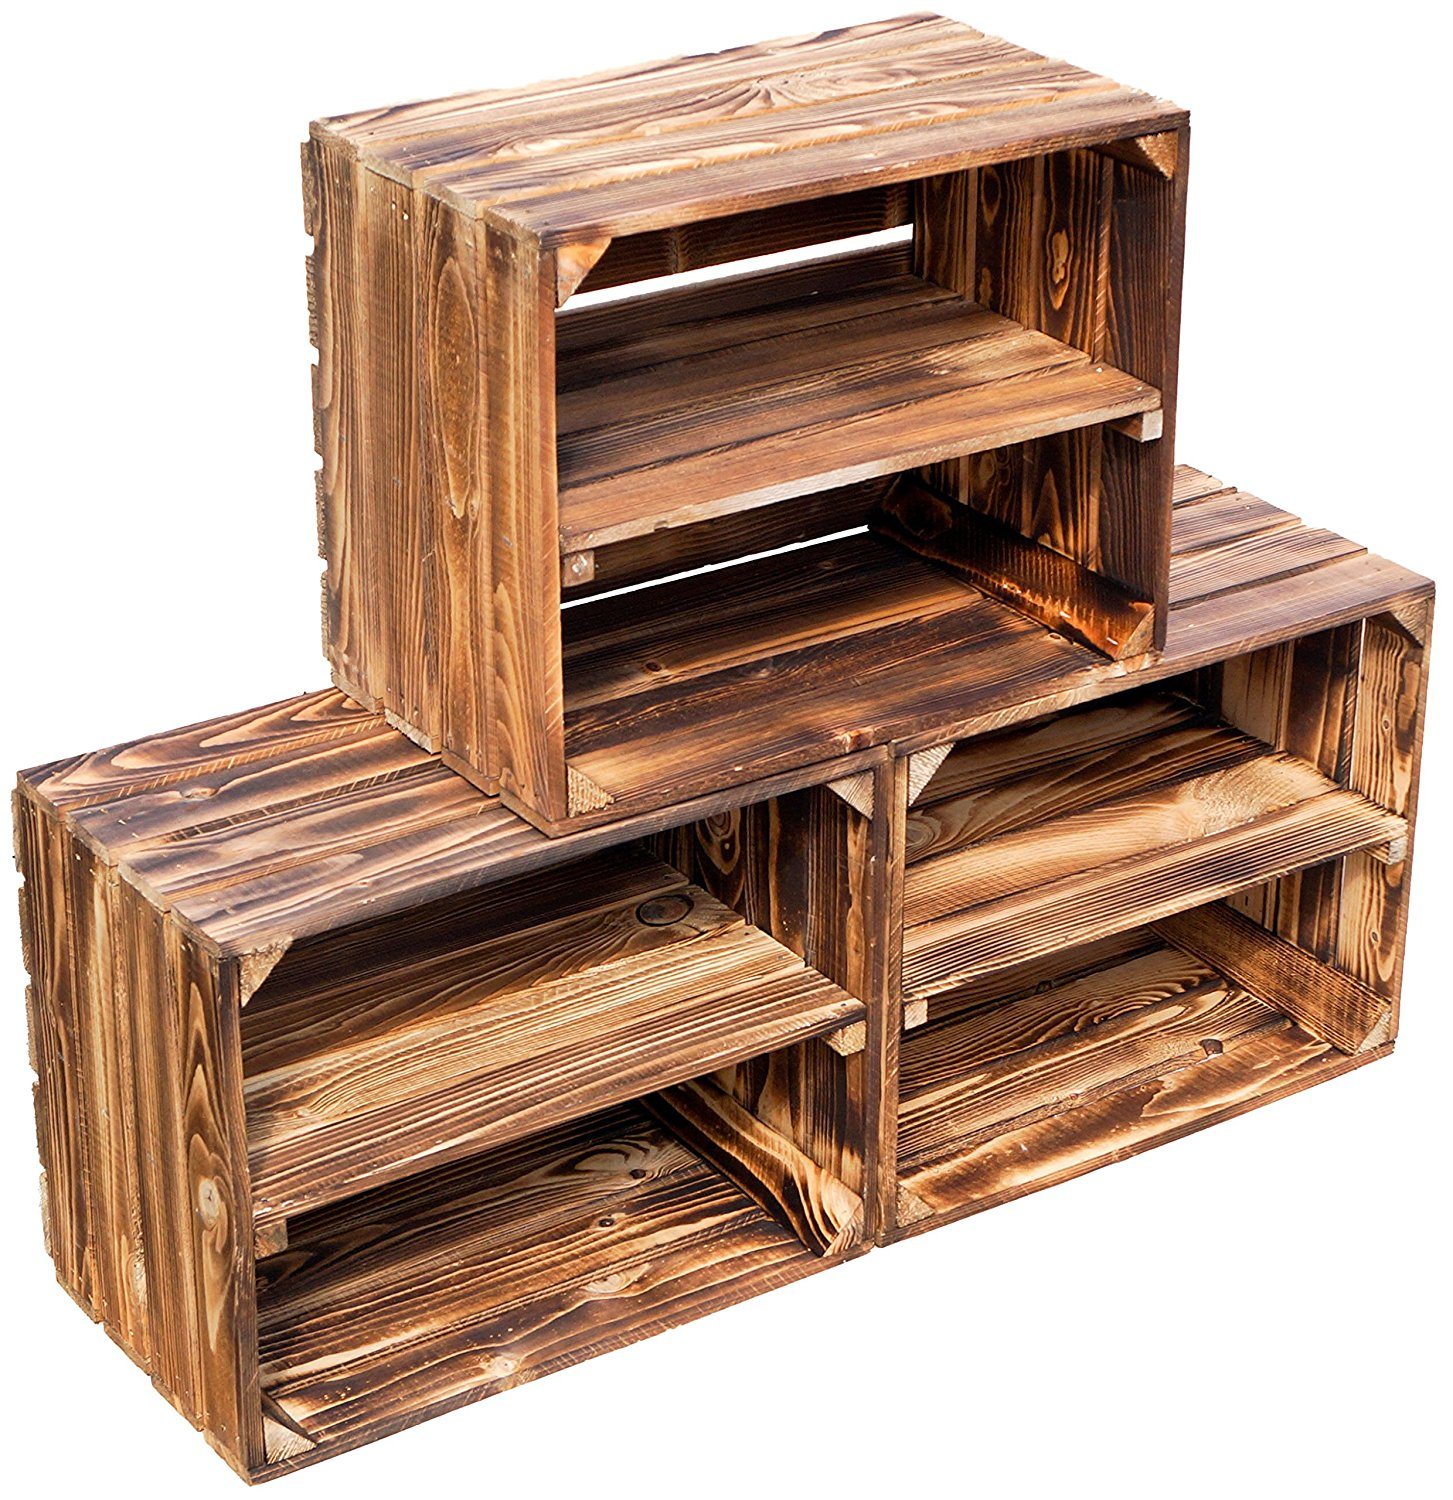 Weinkisten Aus Holz Kaufen ᐅ Weinkisten And Obstkisten Regale Holzkisten Vintage